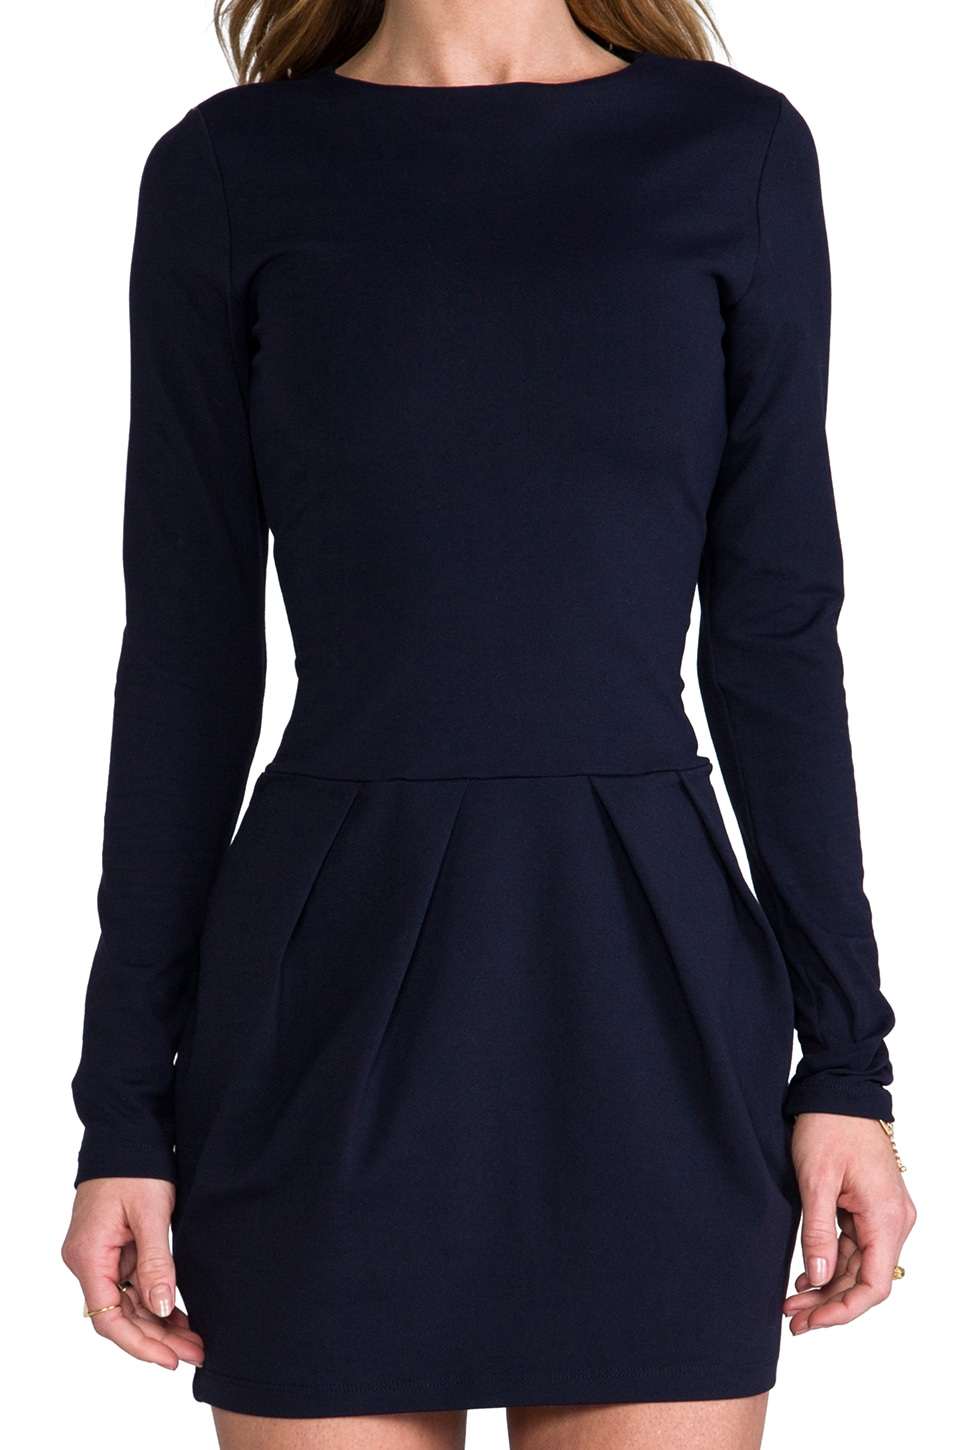 "Susana Monaco Diagonal Pleat 17"" Dress in Midnight"